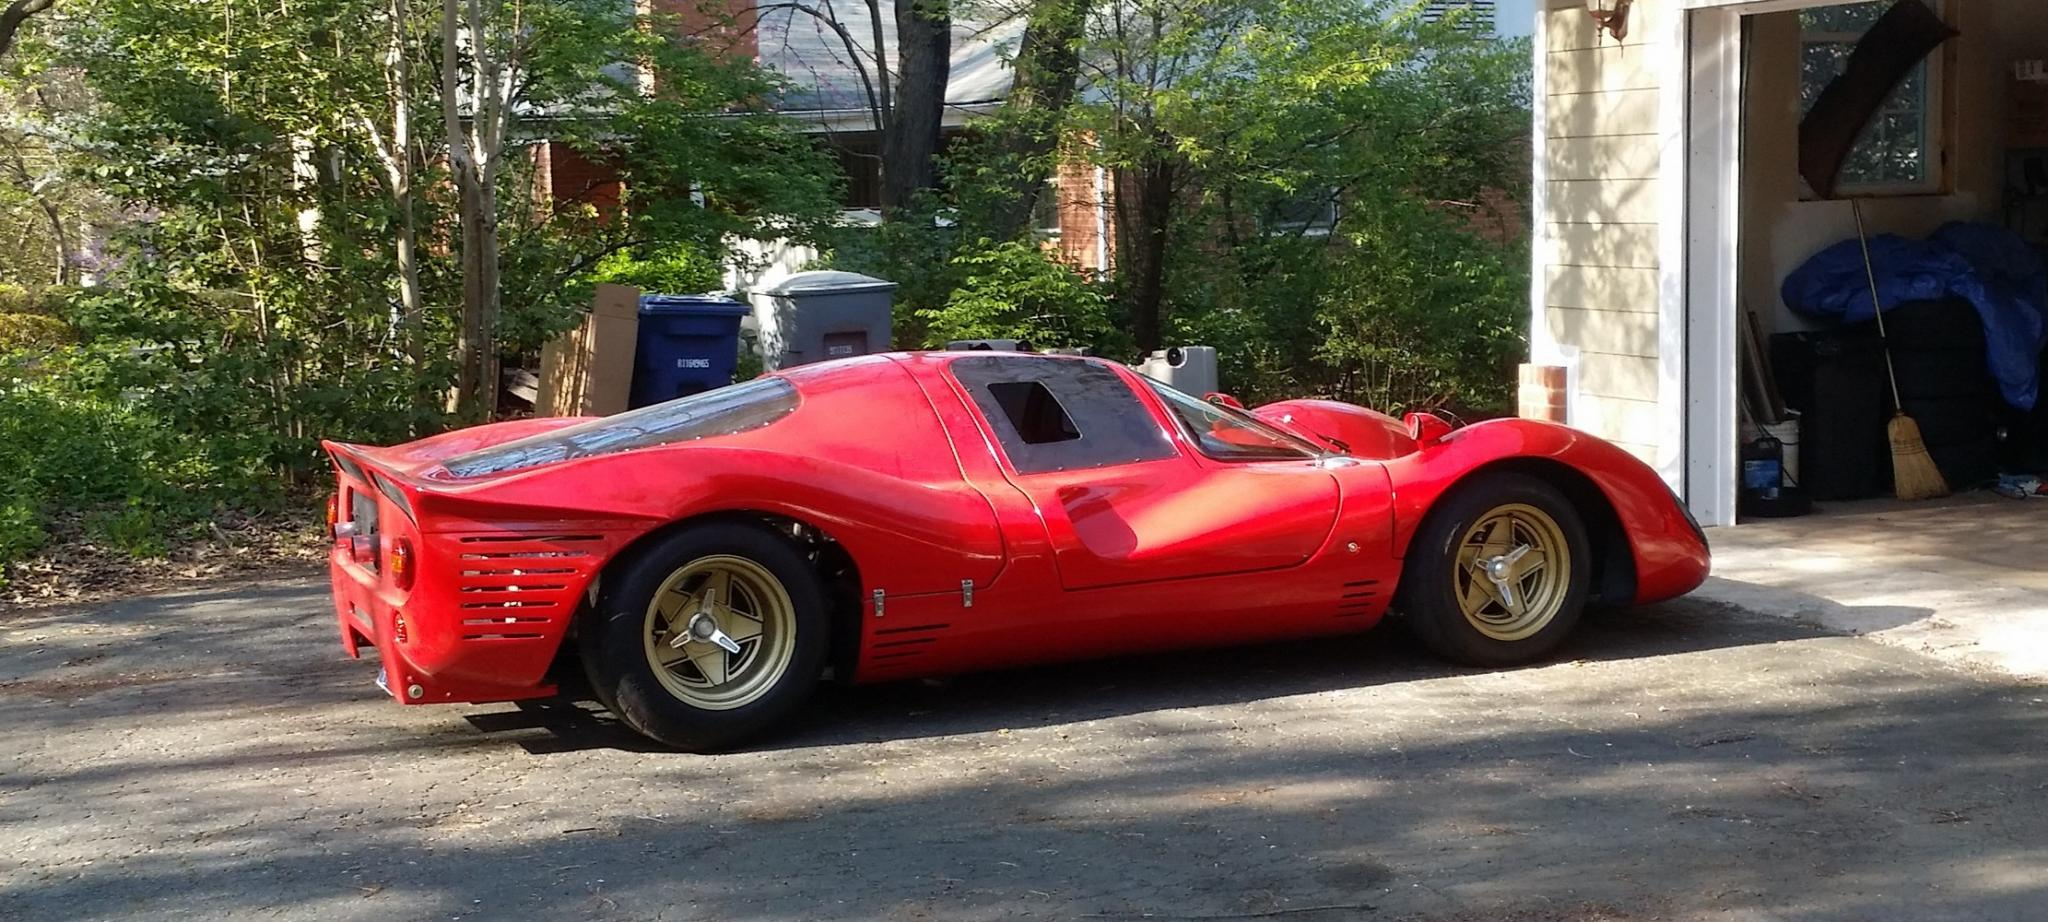 Rcr P4 For Sale Sold Gt40s